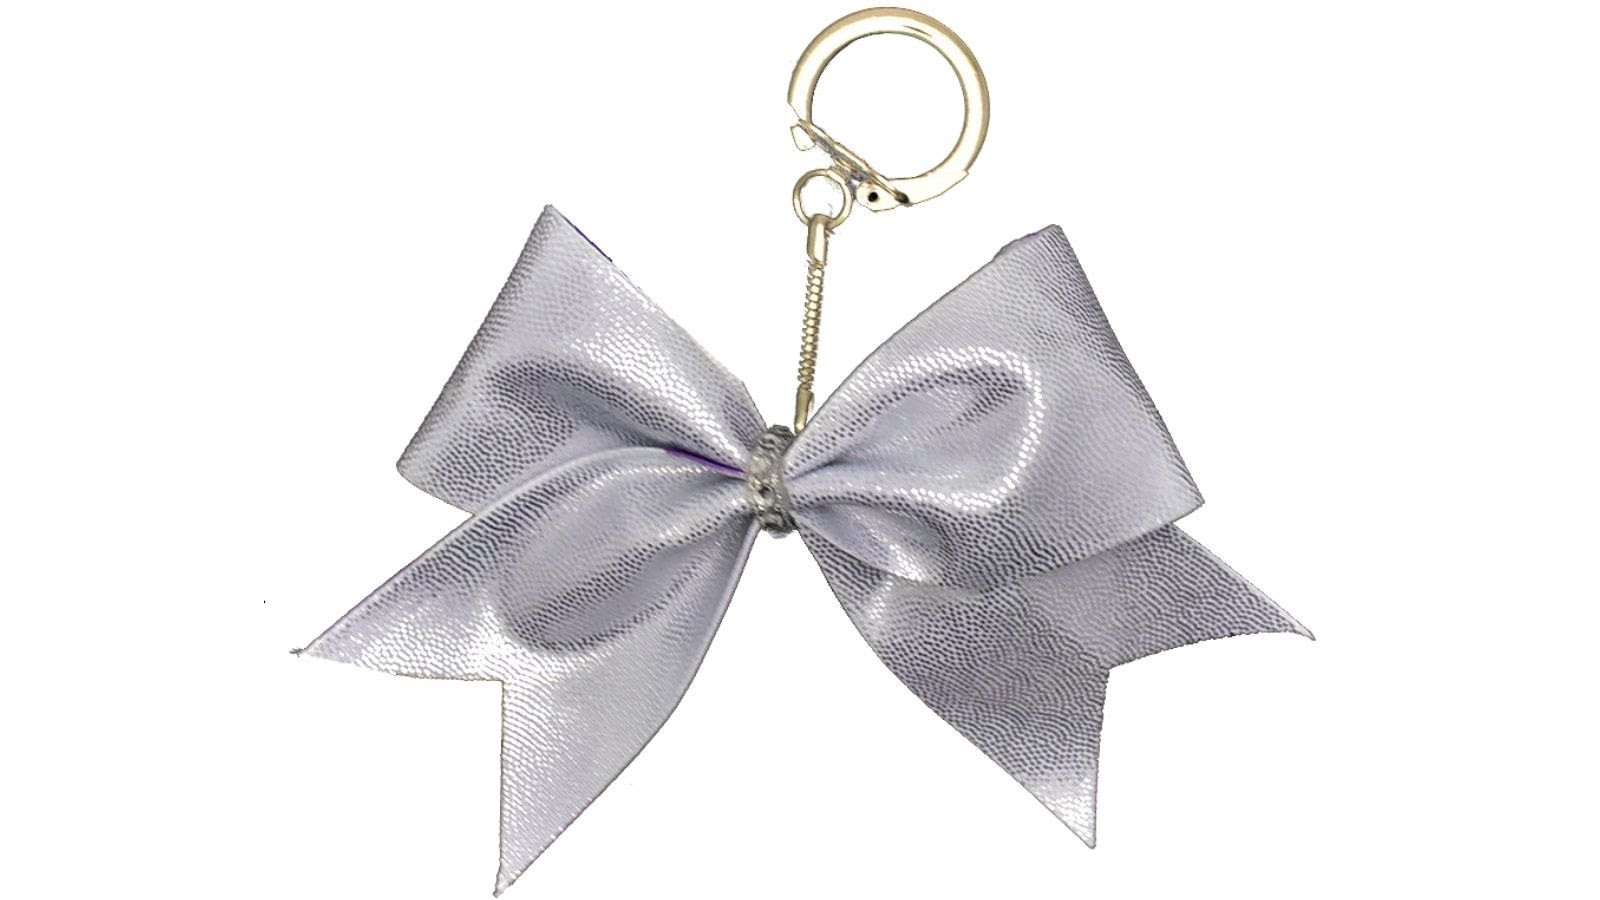 How To Make A Mini Cheer Bow Keychain